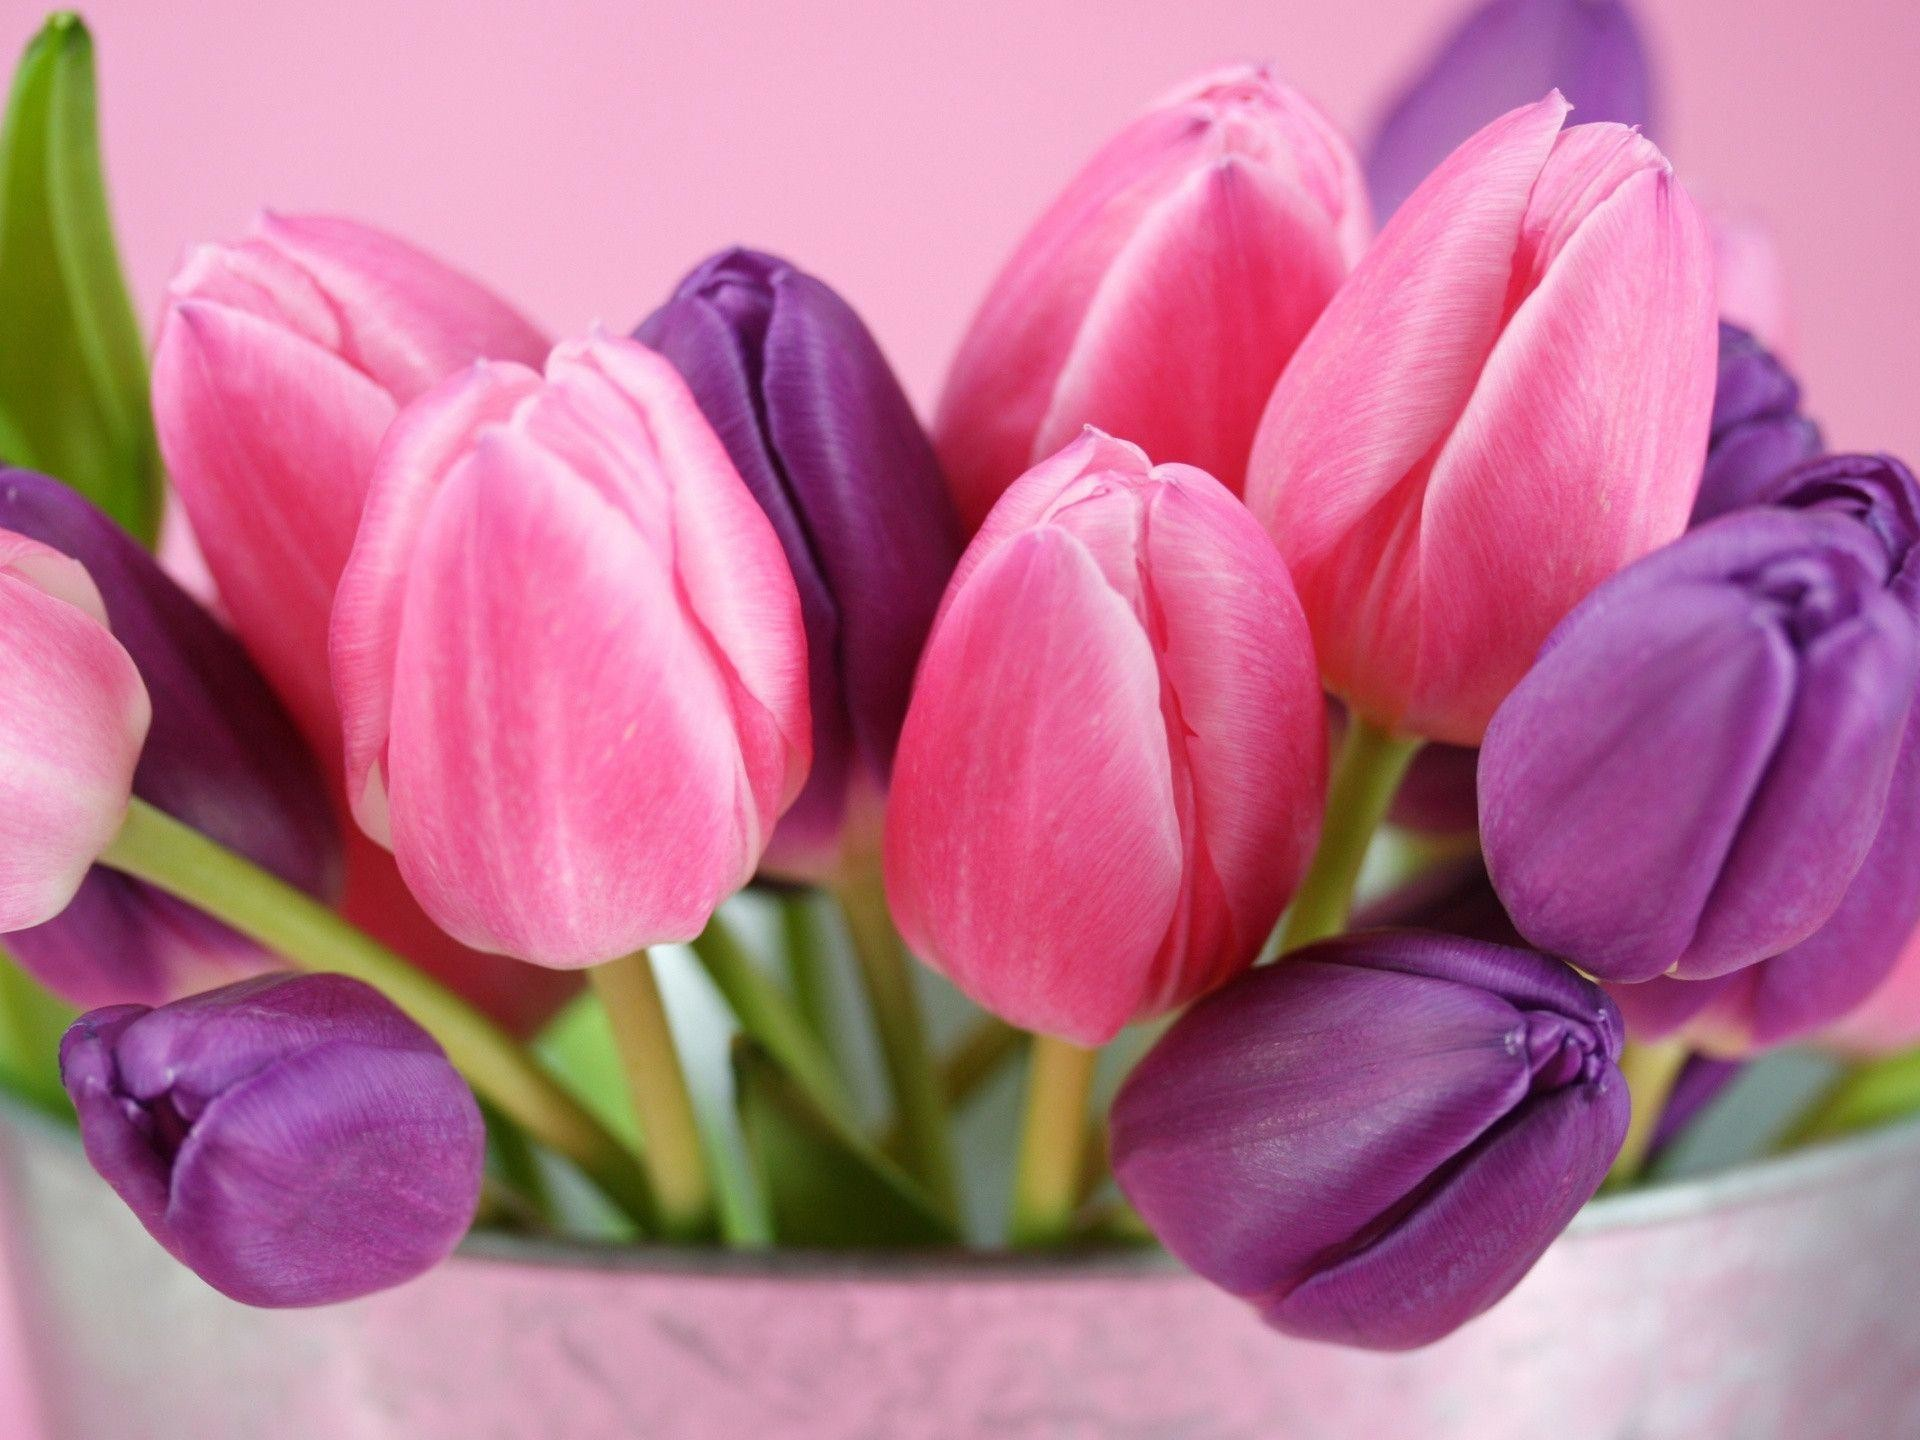 Res: 1920x1440, Pink Tulips Wallpapers - HD Wallpapers Inn